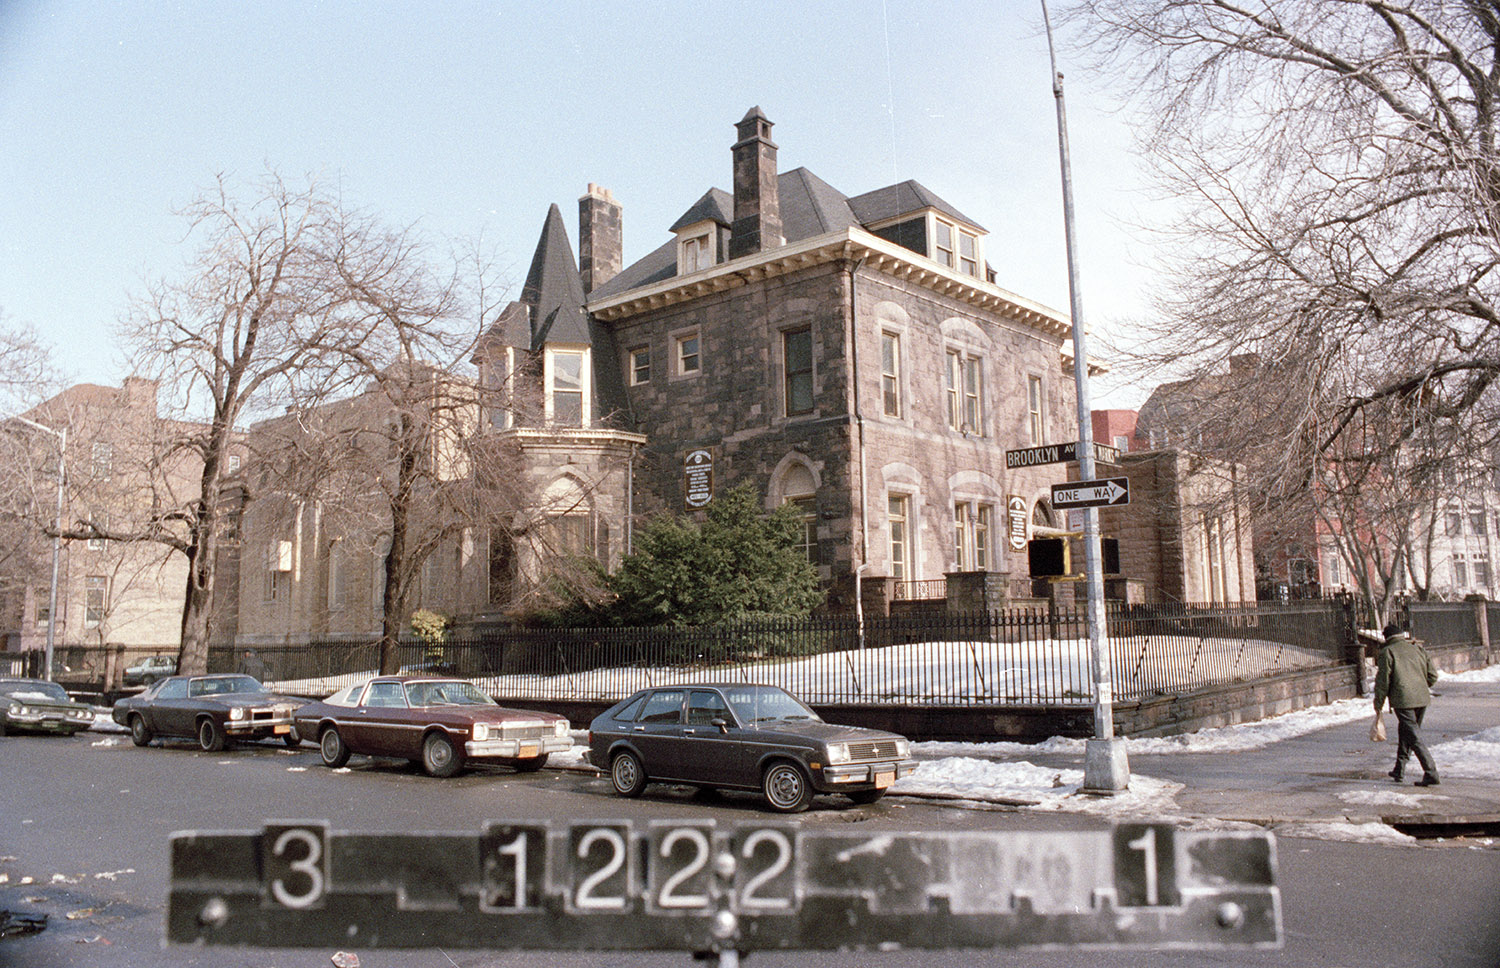 839 St. Marks Ave., 1980s. NYC Municipal Archives.